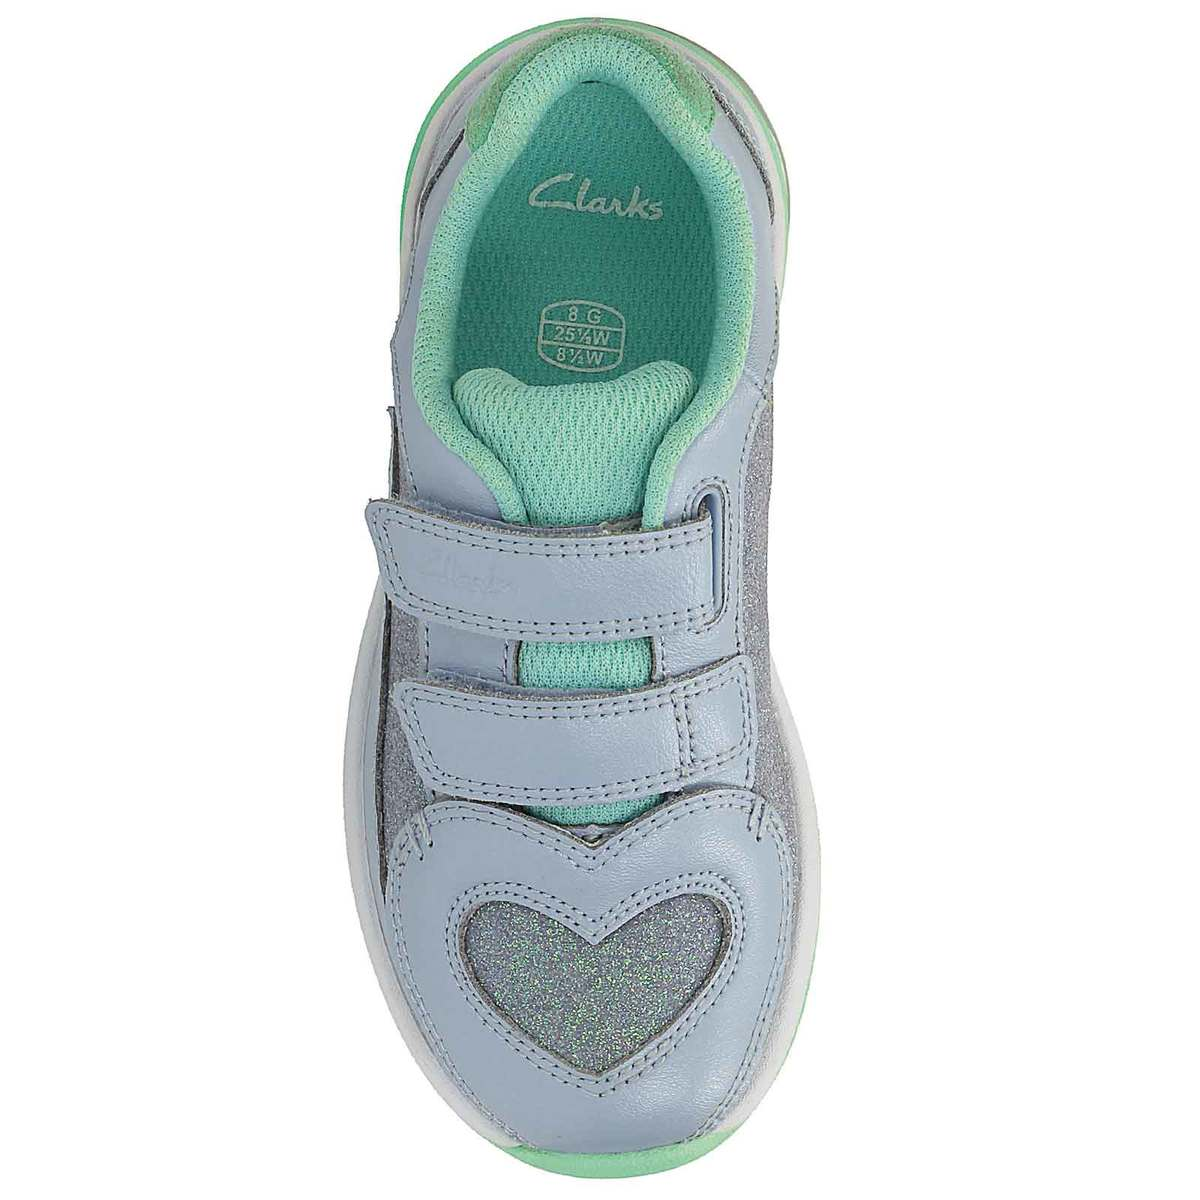 dd4844beb4e697 Clarks Trainers - Blue multi - 2340 06F PIPER CHAT INF